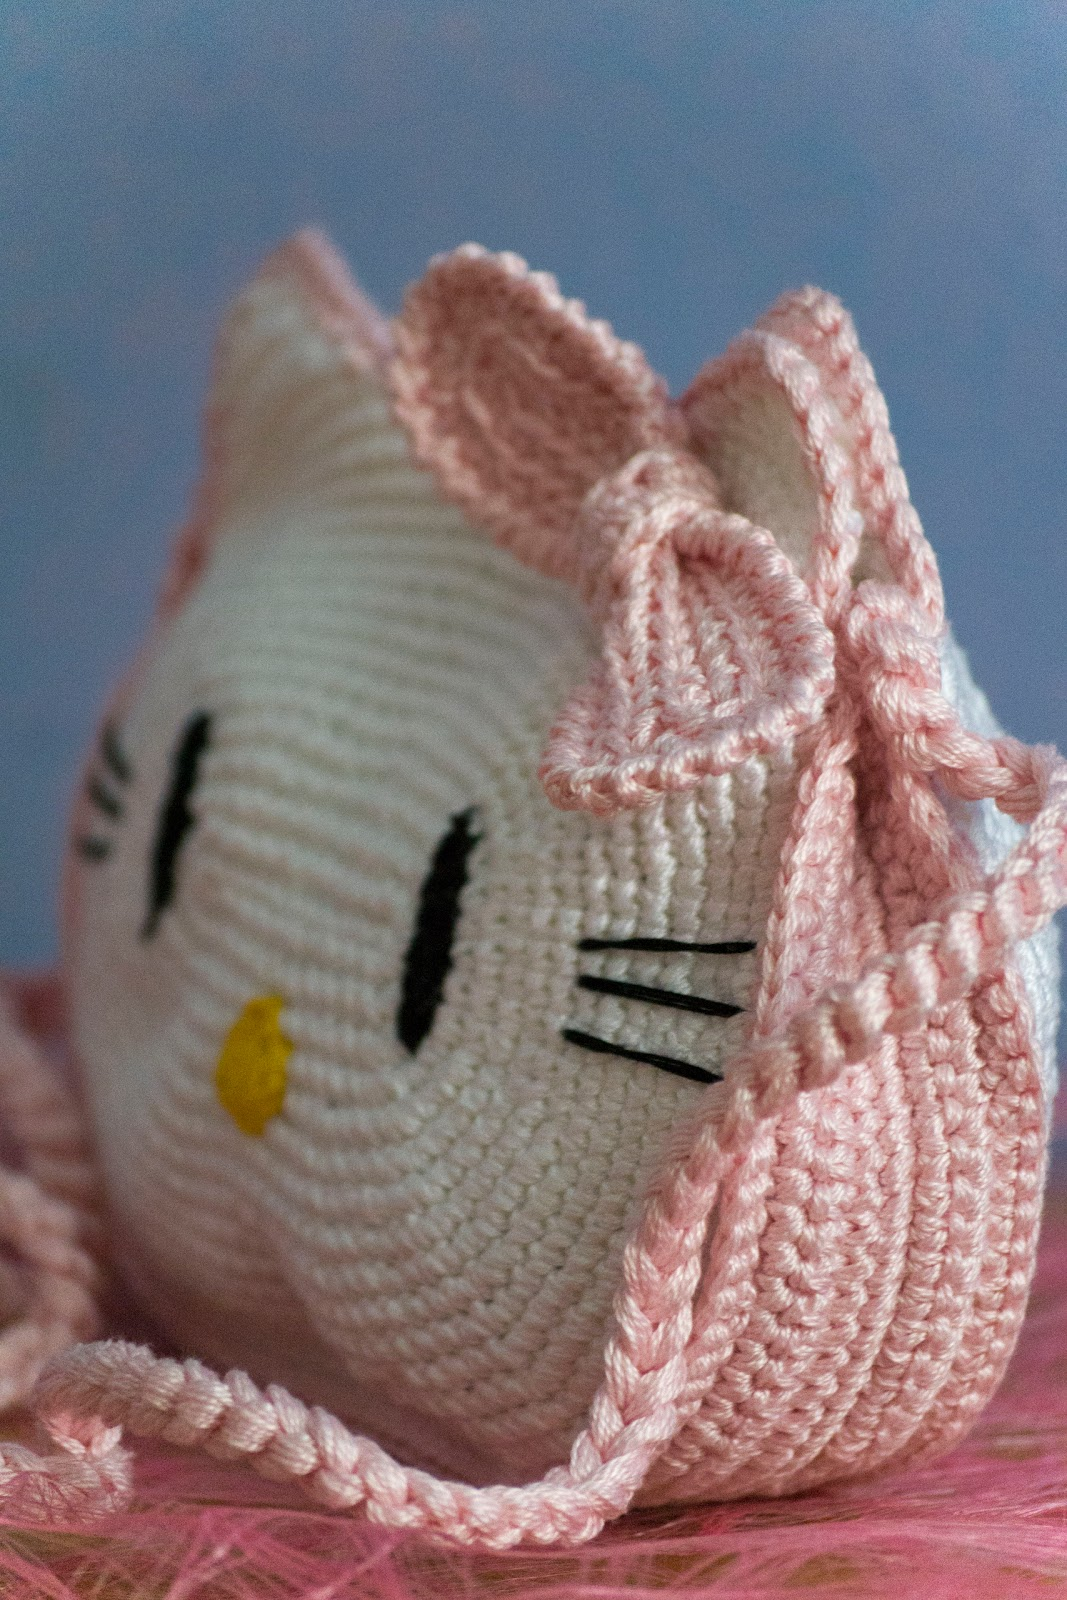 Crochet Purse Patterns Hello Kitty : Faccio cose knit vedo gente: Hello Kitty purse